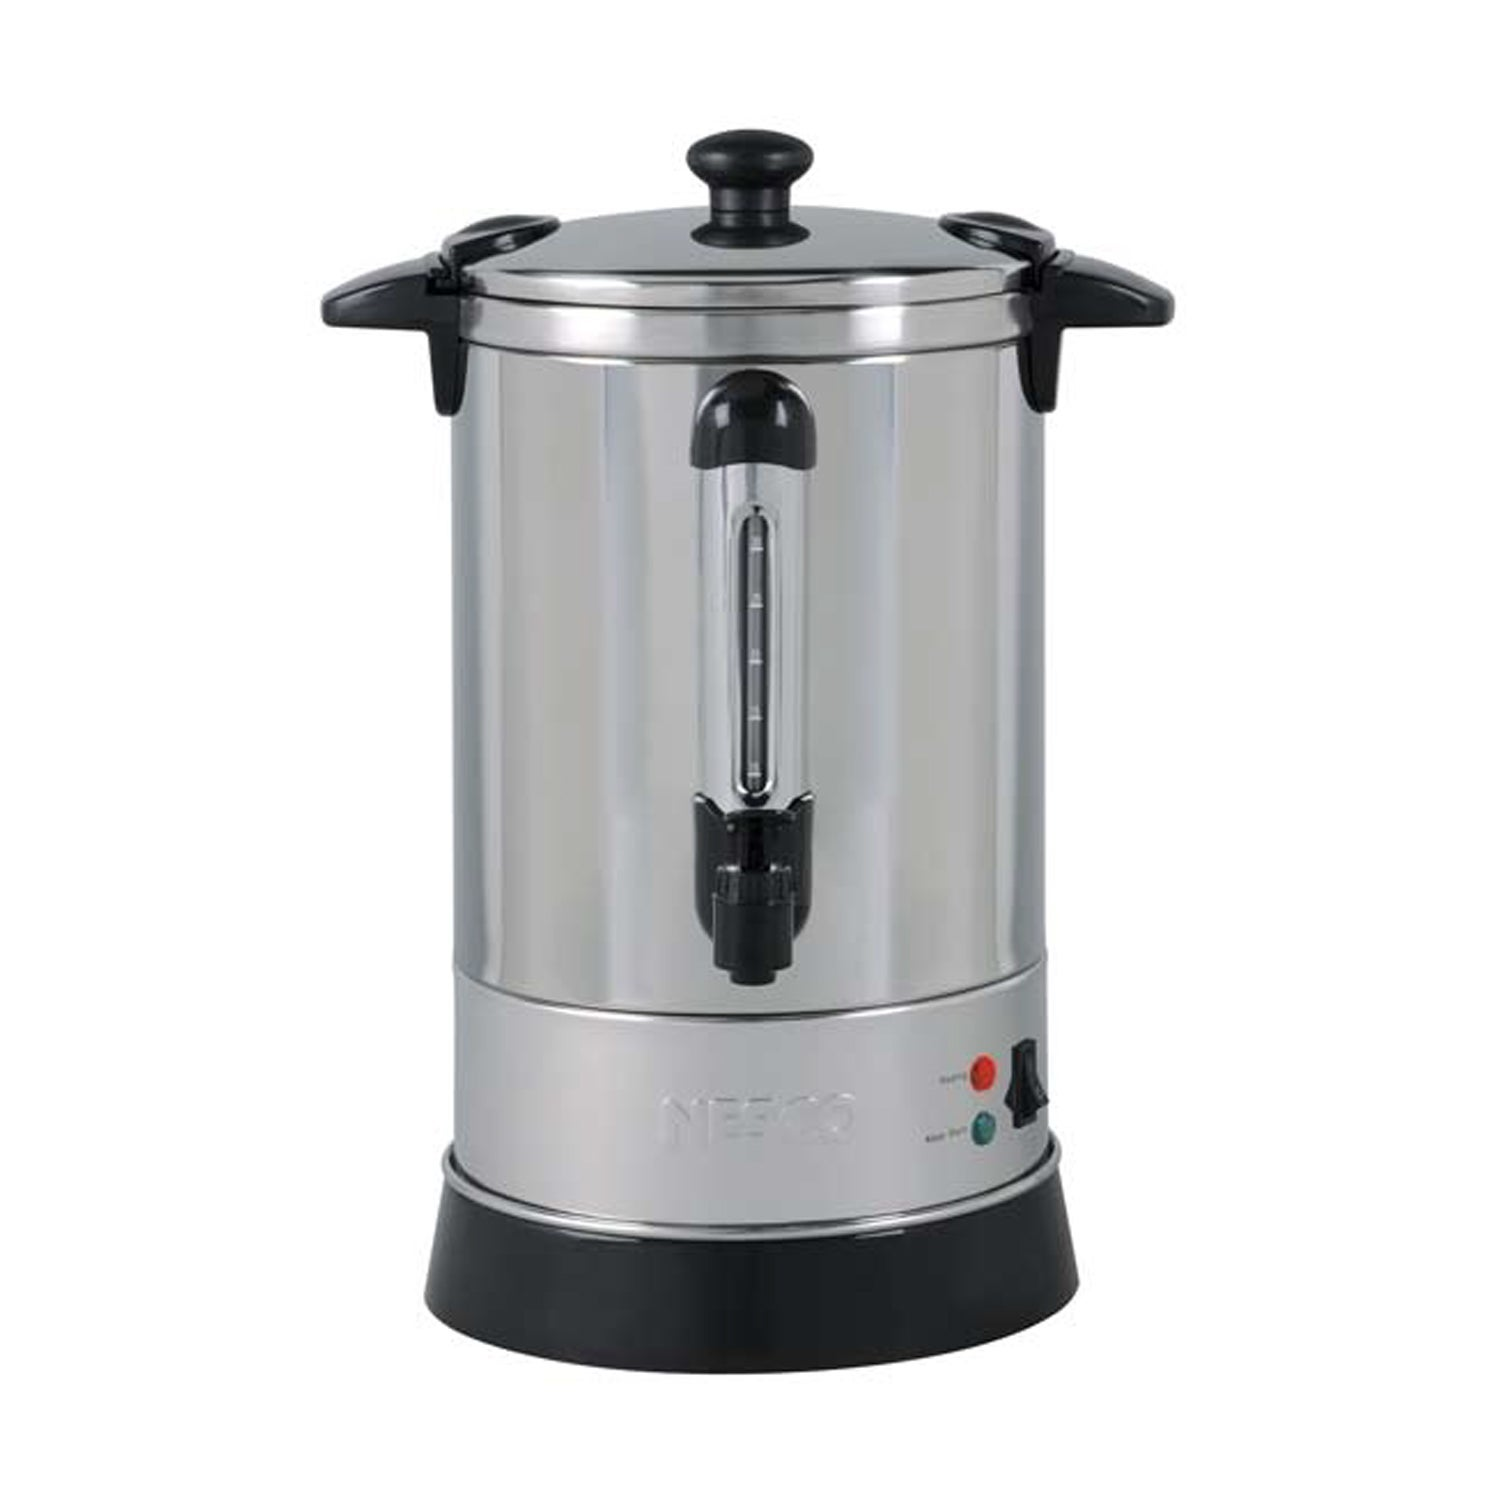 Nesco Cu 30 Stainless Steel 6 8 Liter Professional Coffee